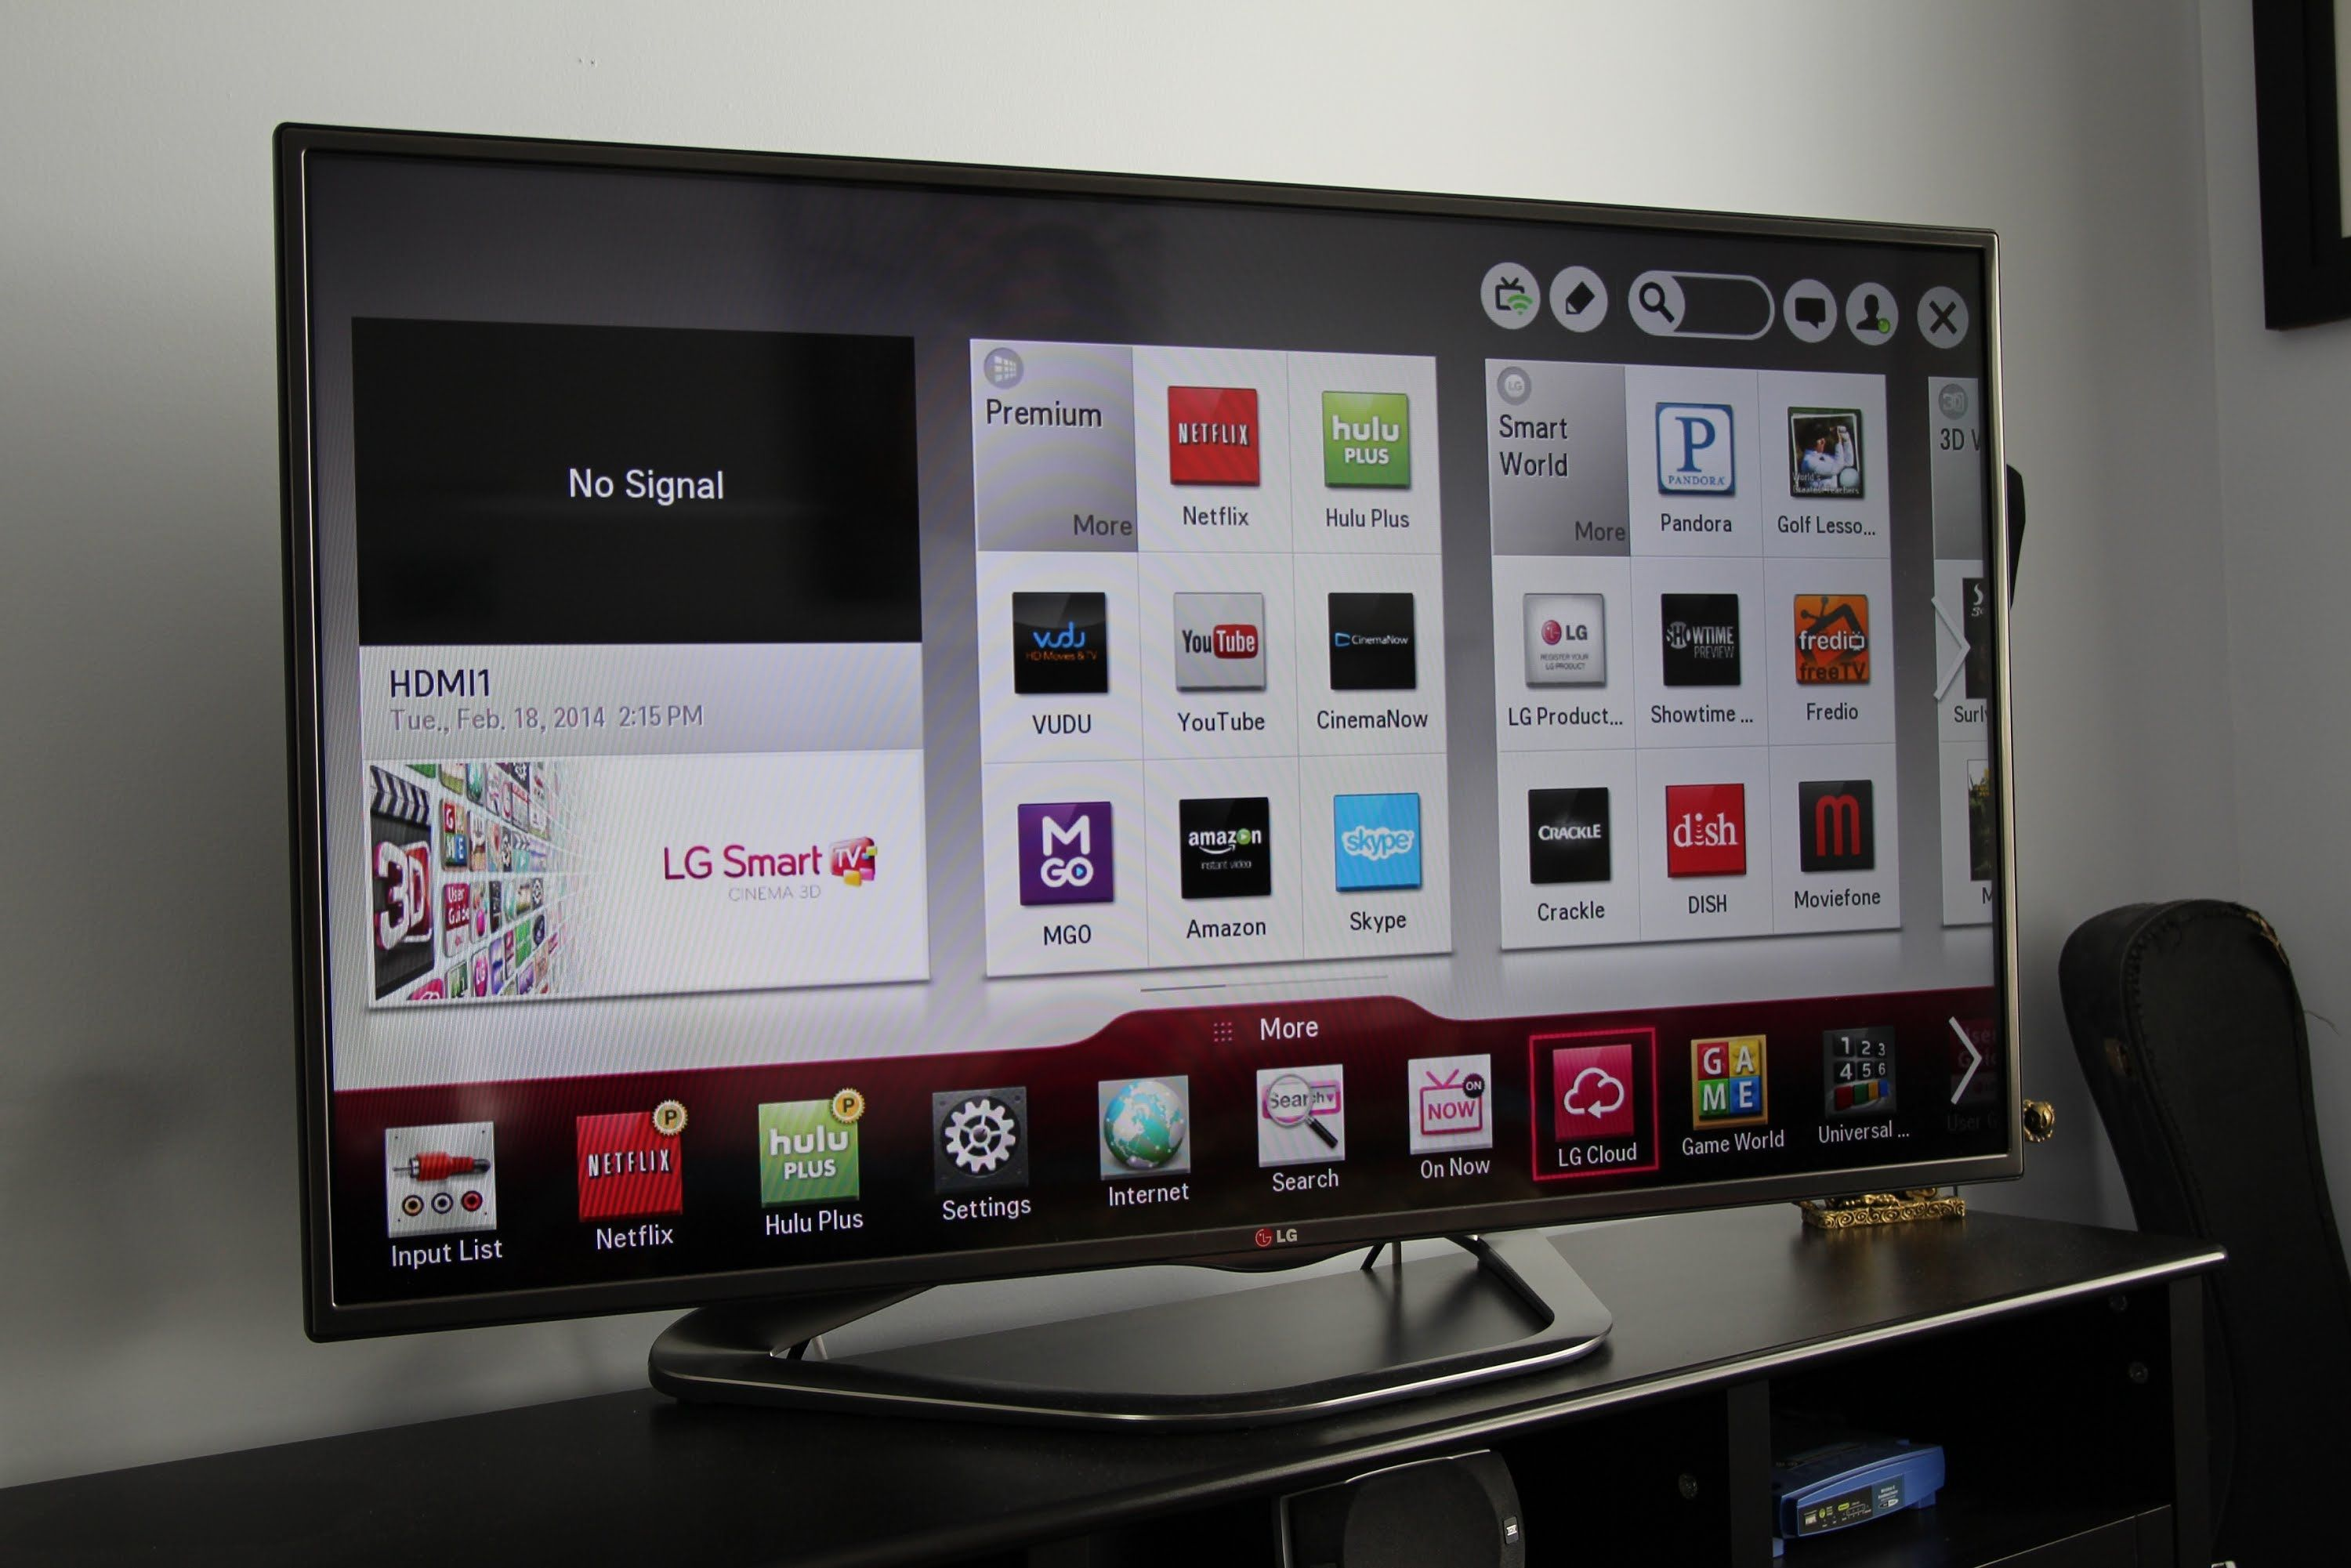 LG 3D Smart TV Features Demo LA6200 & LA6205 Series Tvs